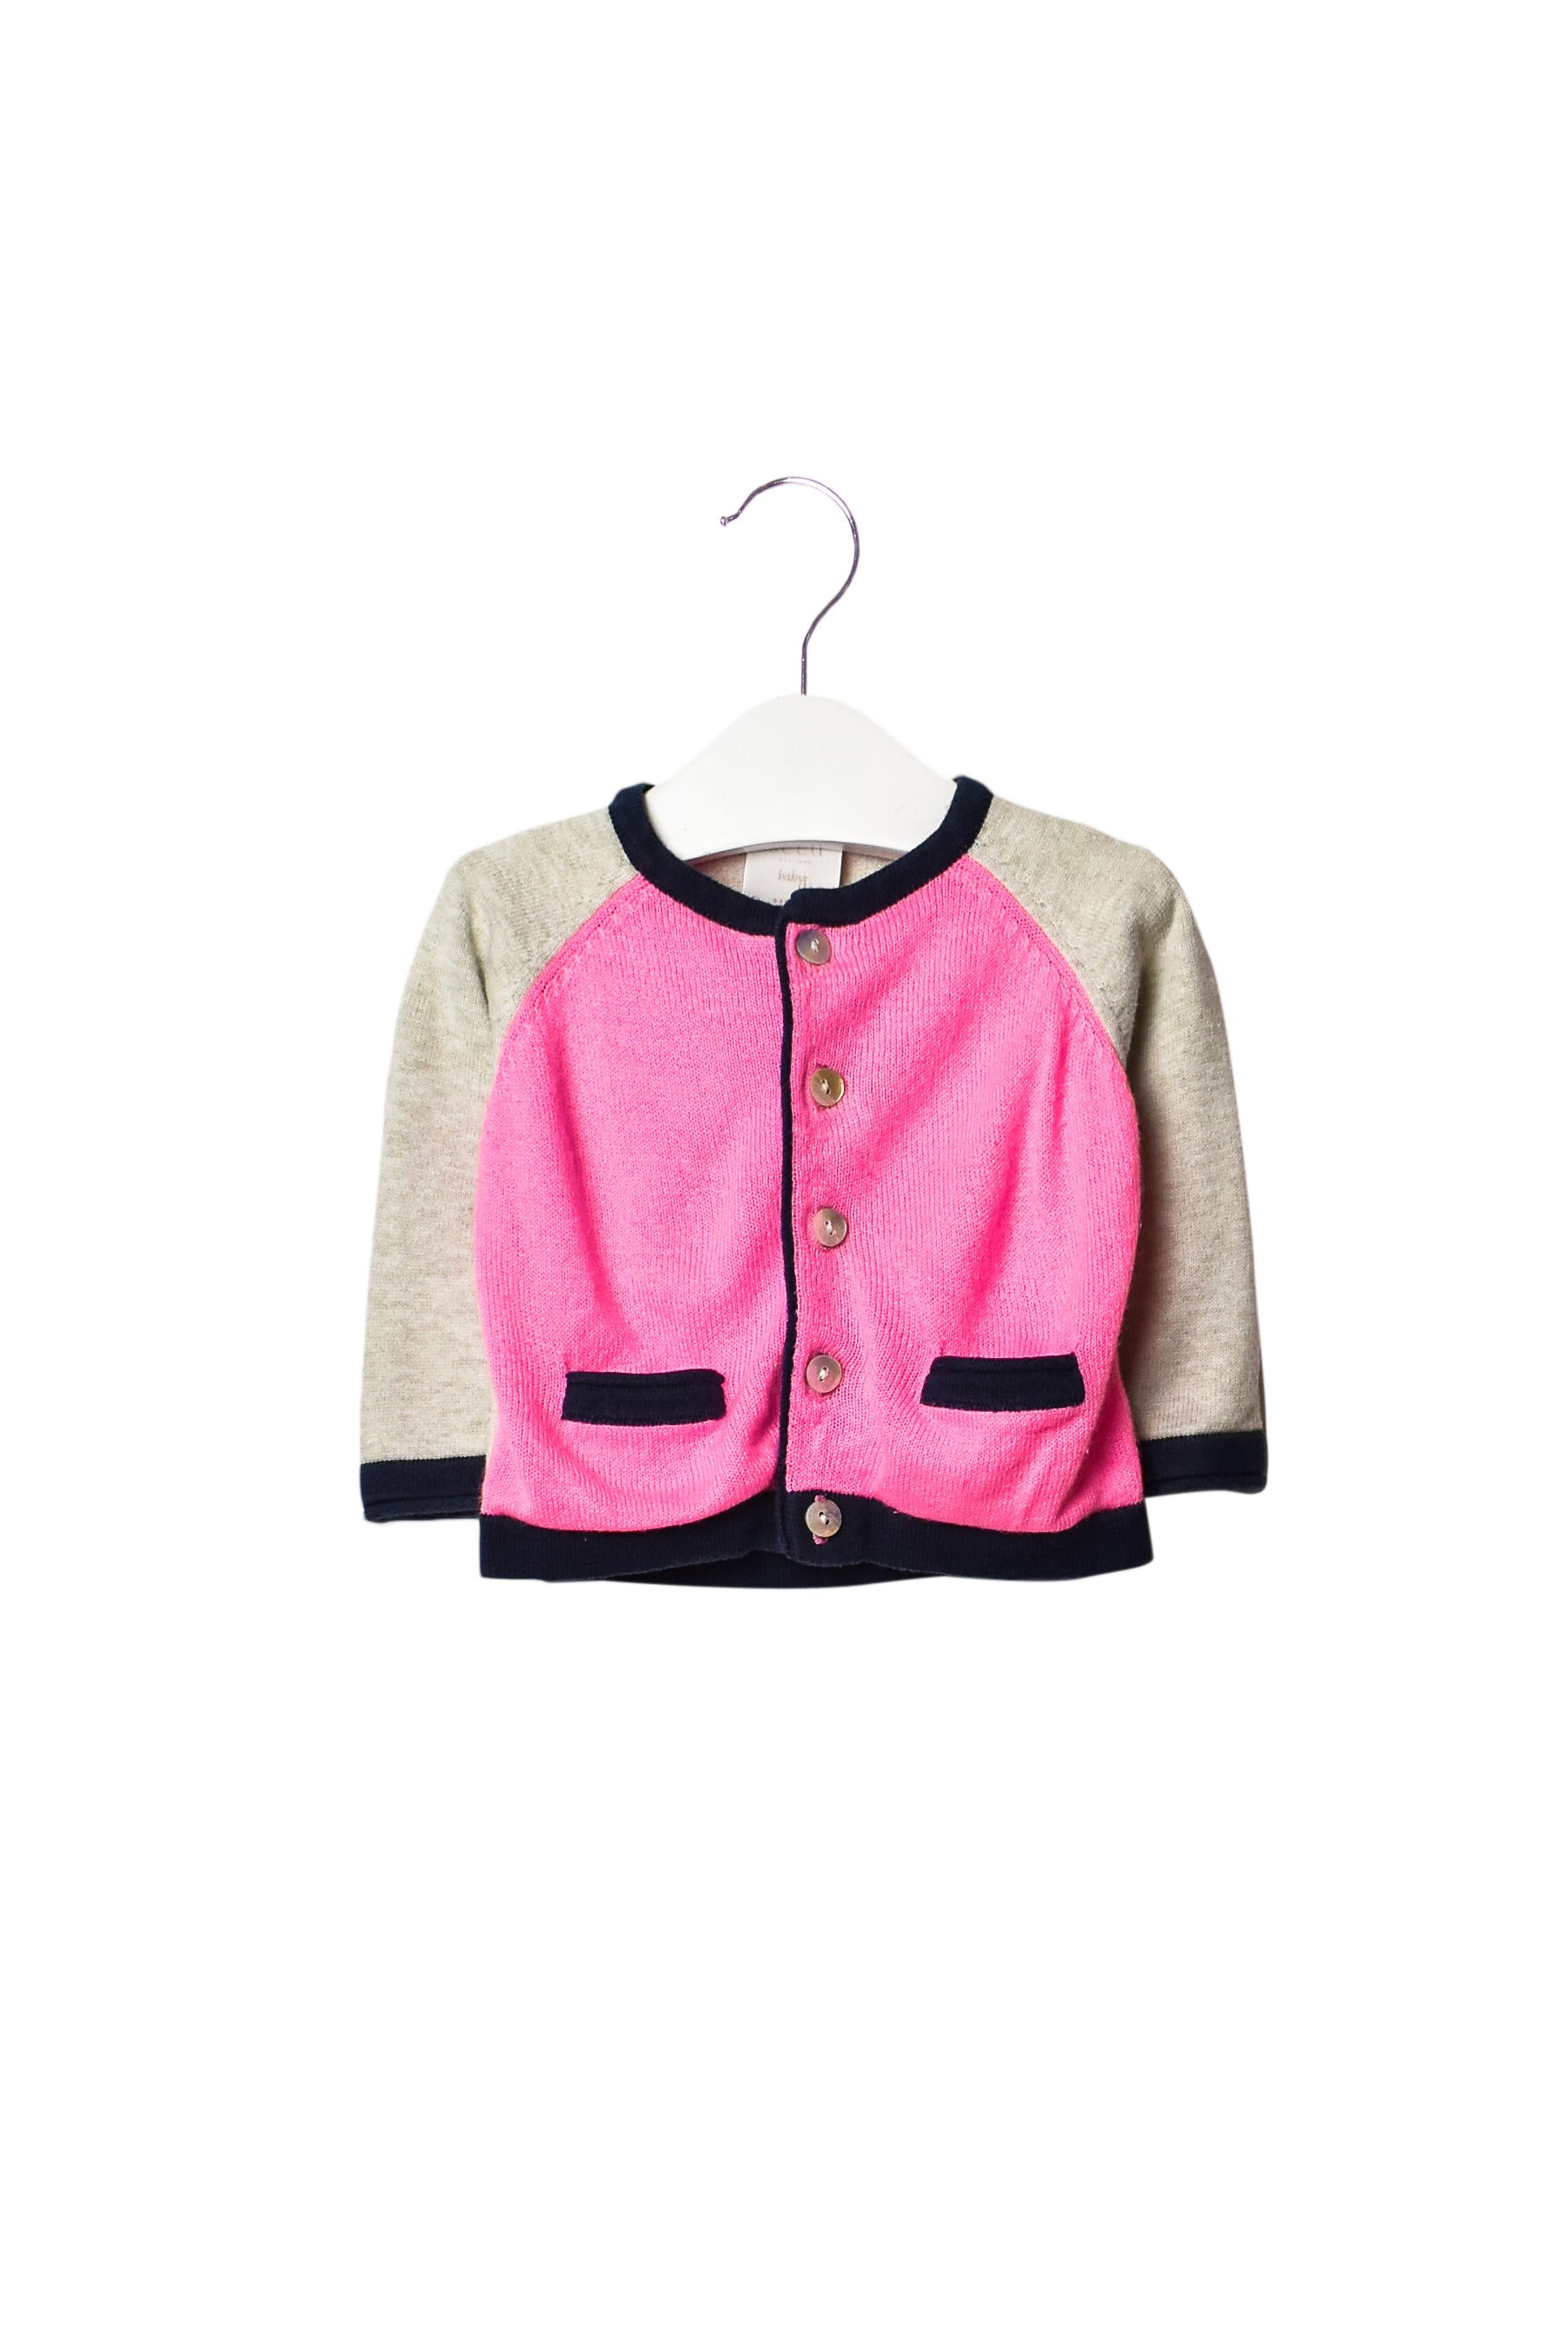 10007970 Seed Baby~ Cardigan 0-3M at Retykle